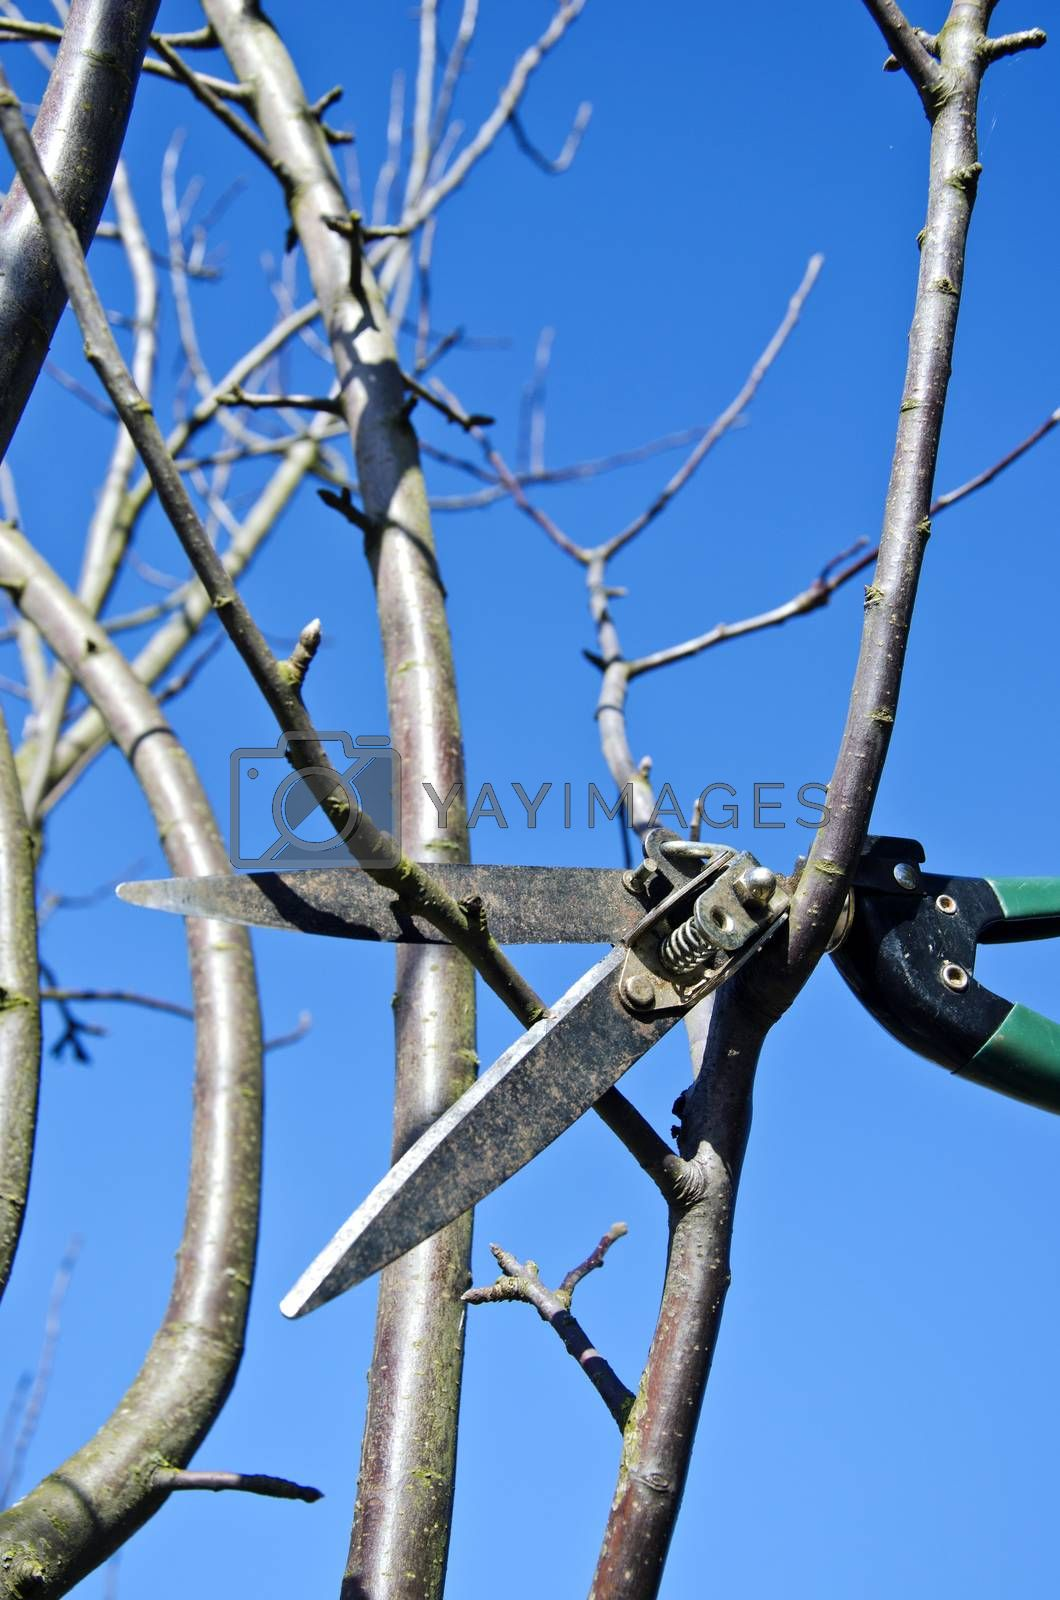 Royalty free image of Pruning shears hanged in apple tree in spring  by alis_photo